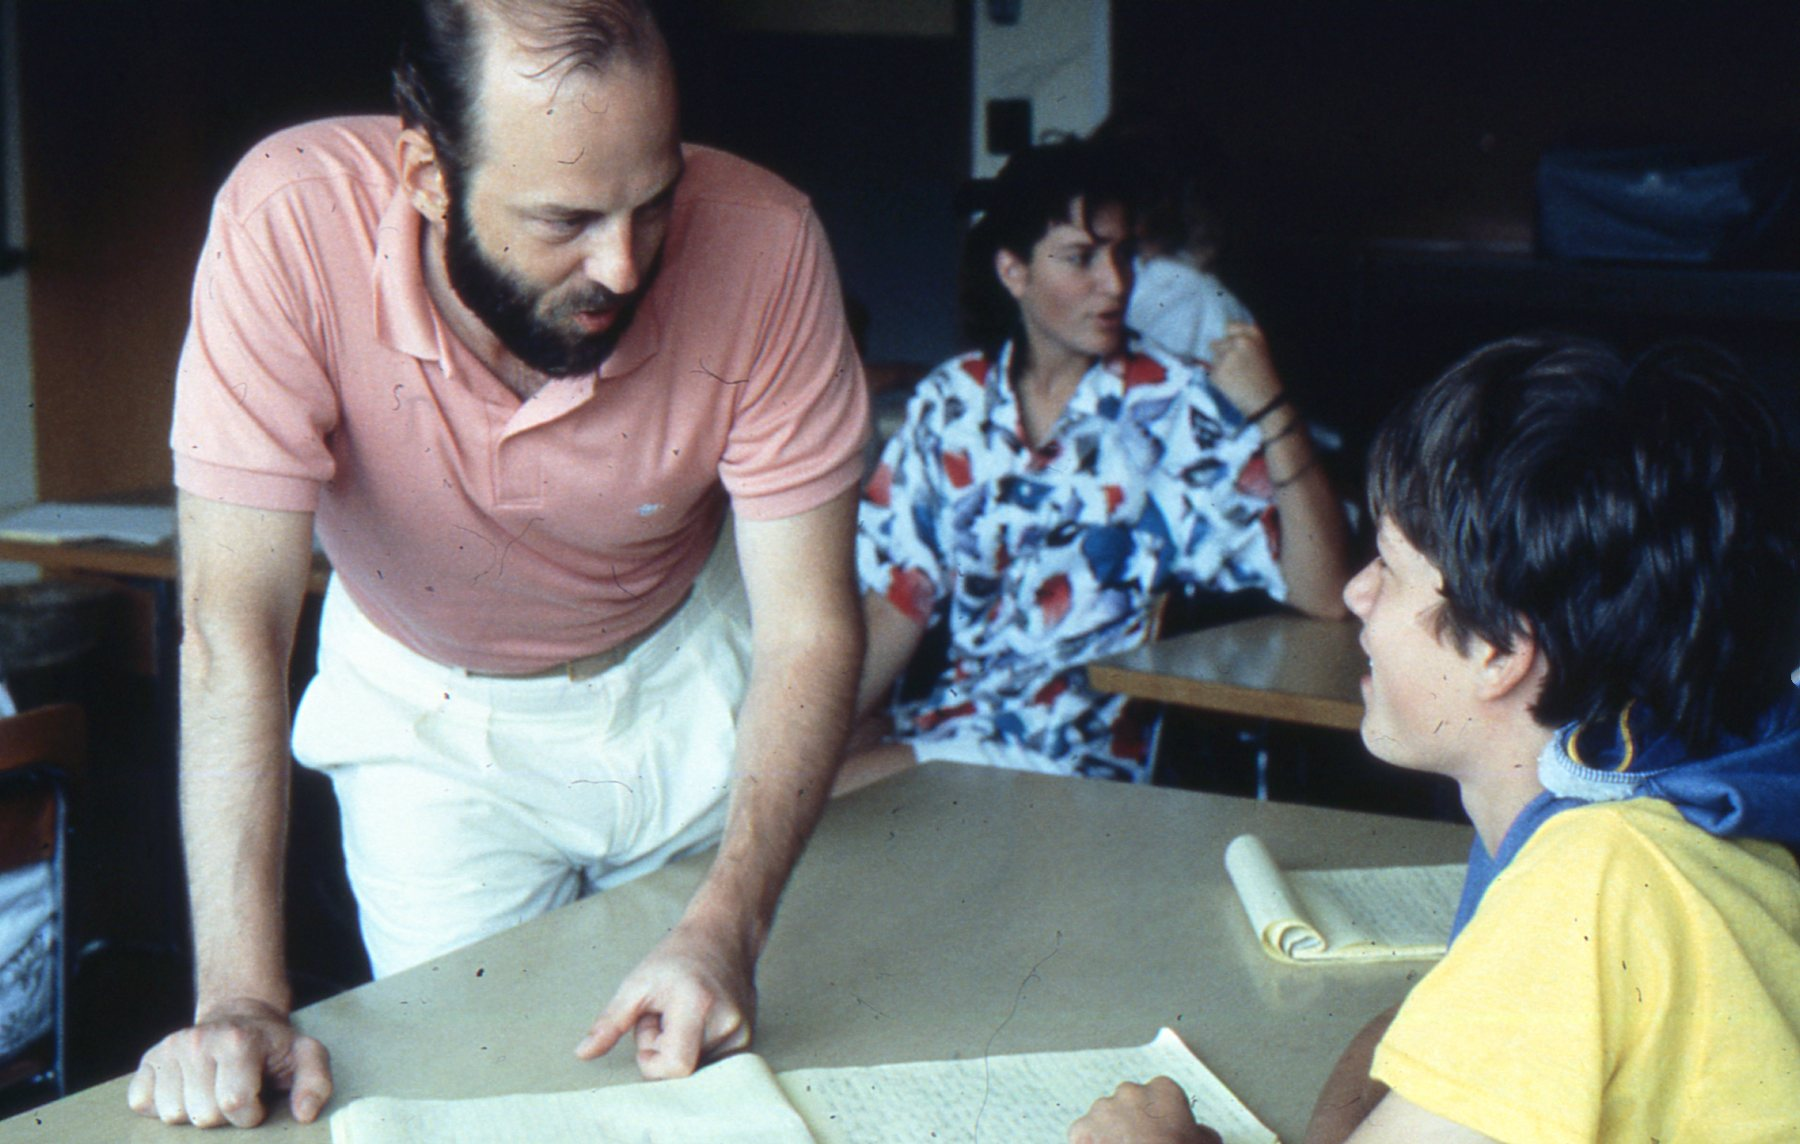 Not actually from YAC, but this photo shows the author in action during a COMPAS Summer Writing Workshop in 1987.